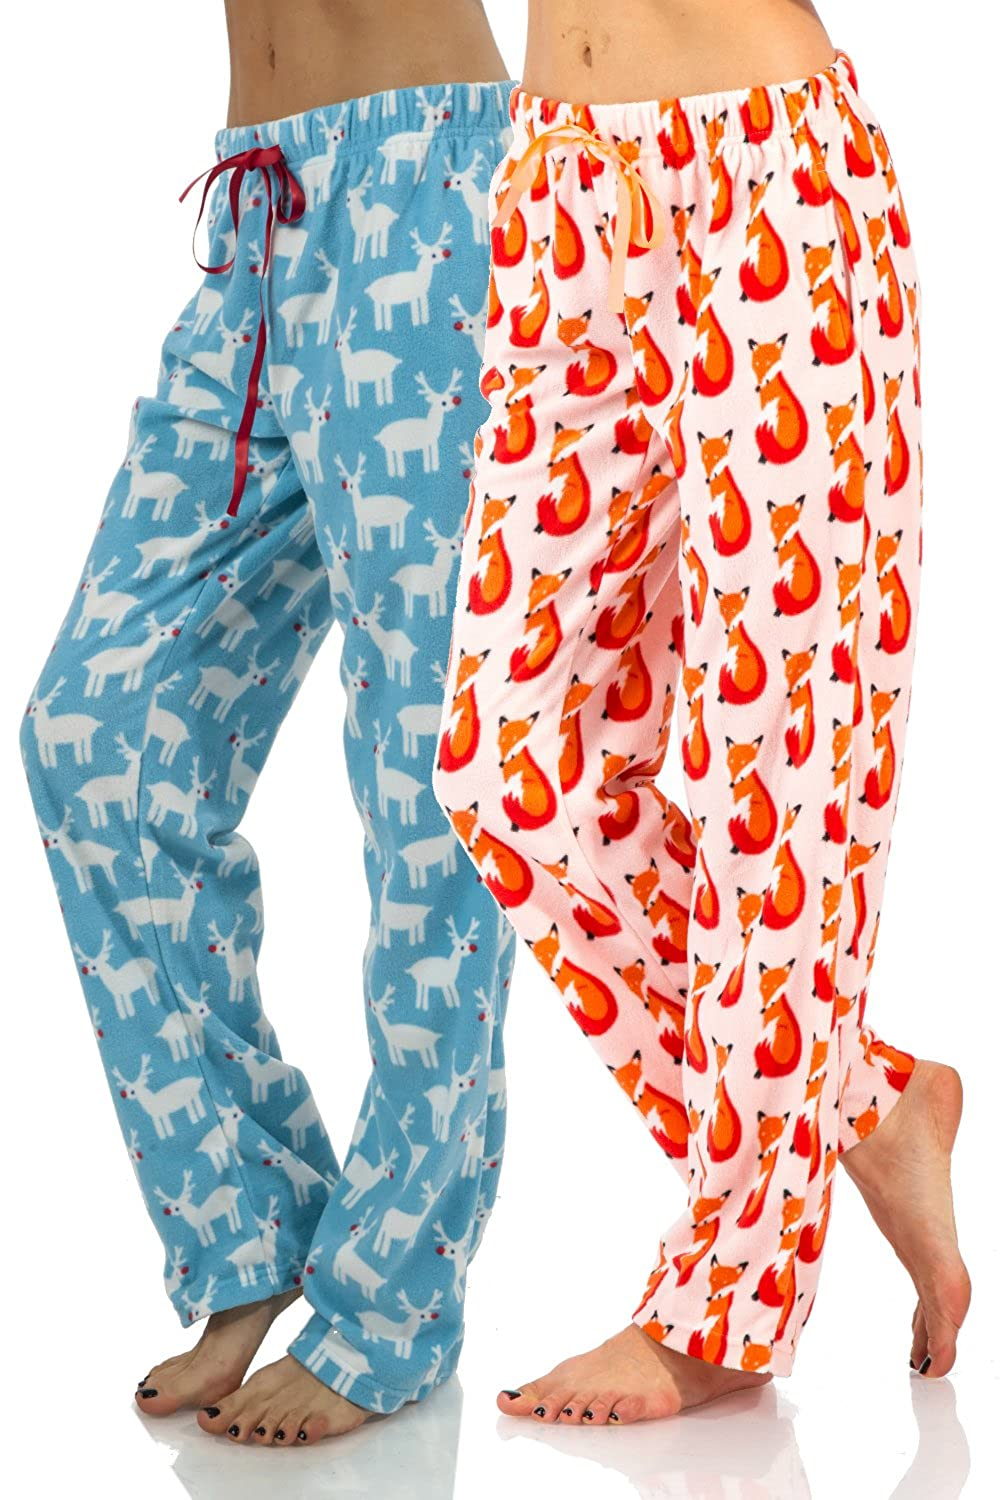 Ashford & Brooks Women's Plush Microfleece Pajama Sleep Pants 2 Pack